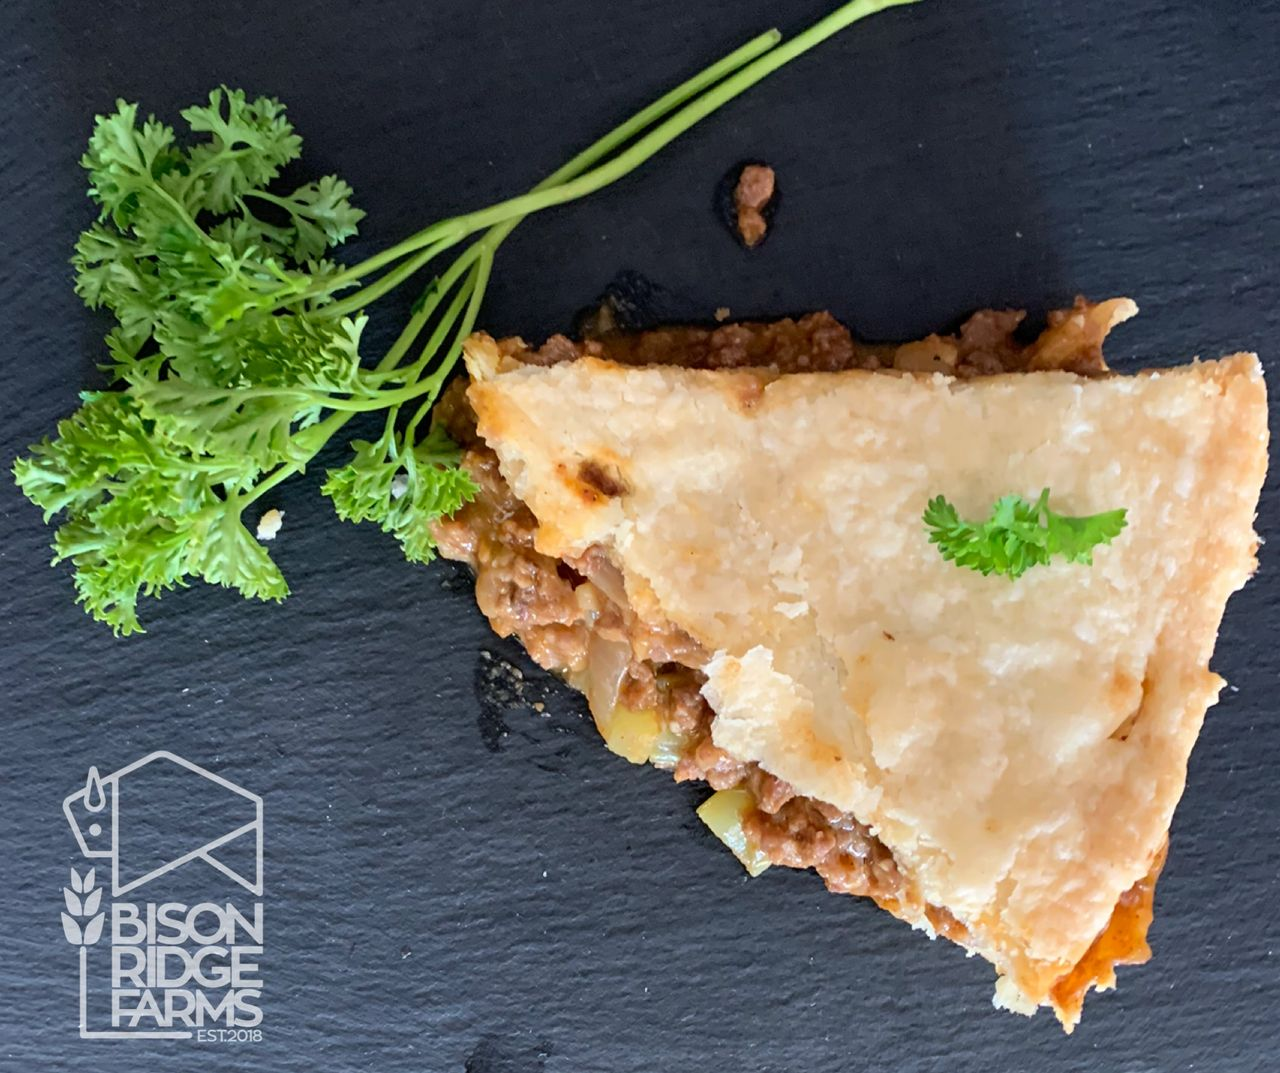 Slice of bison and cheddar pie garnished with parsley